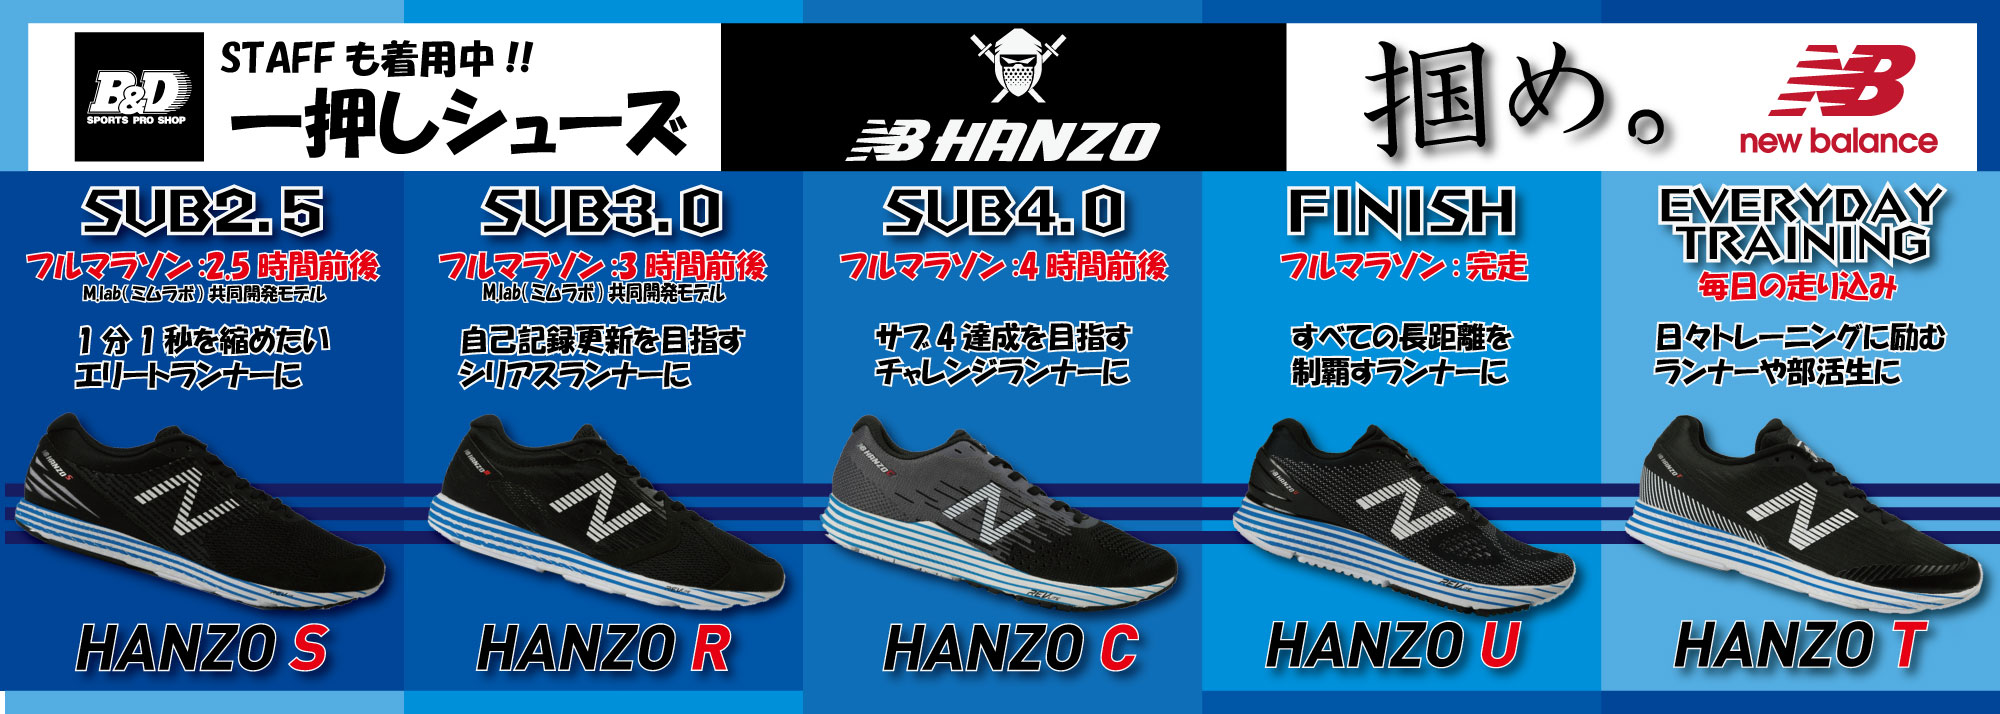 New balance「HANZO」New color発売!!